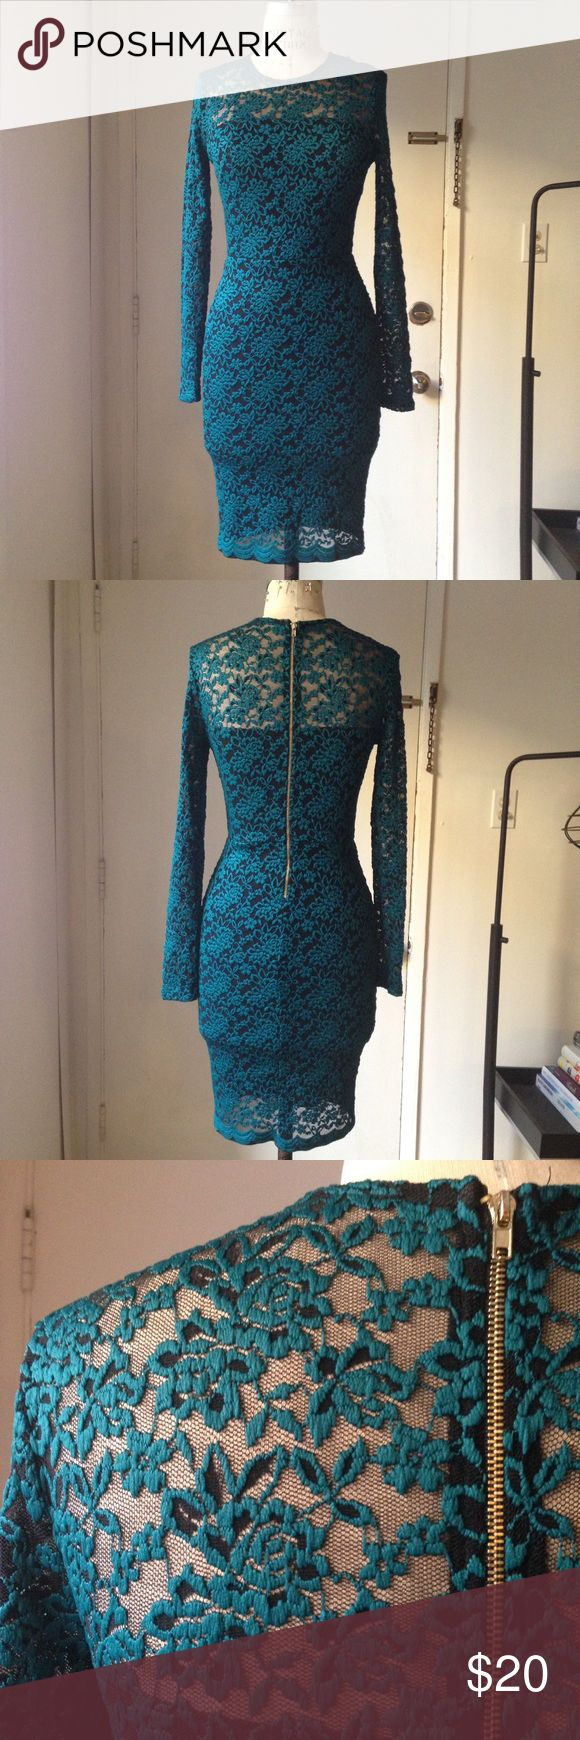 Blue teal lace black dress underlay S Awesome lace dress with black underlay. Hits below the knee, body con style with back gold tone zipper. Dresses